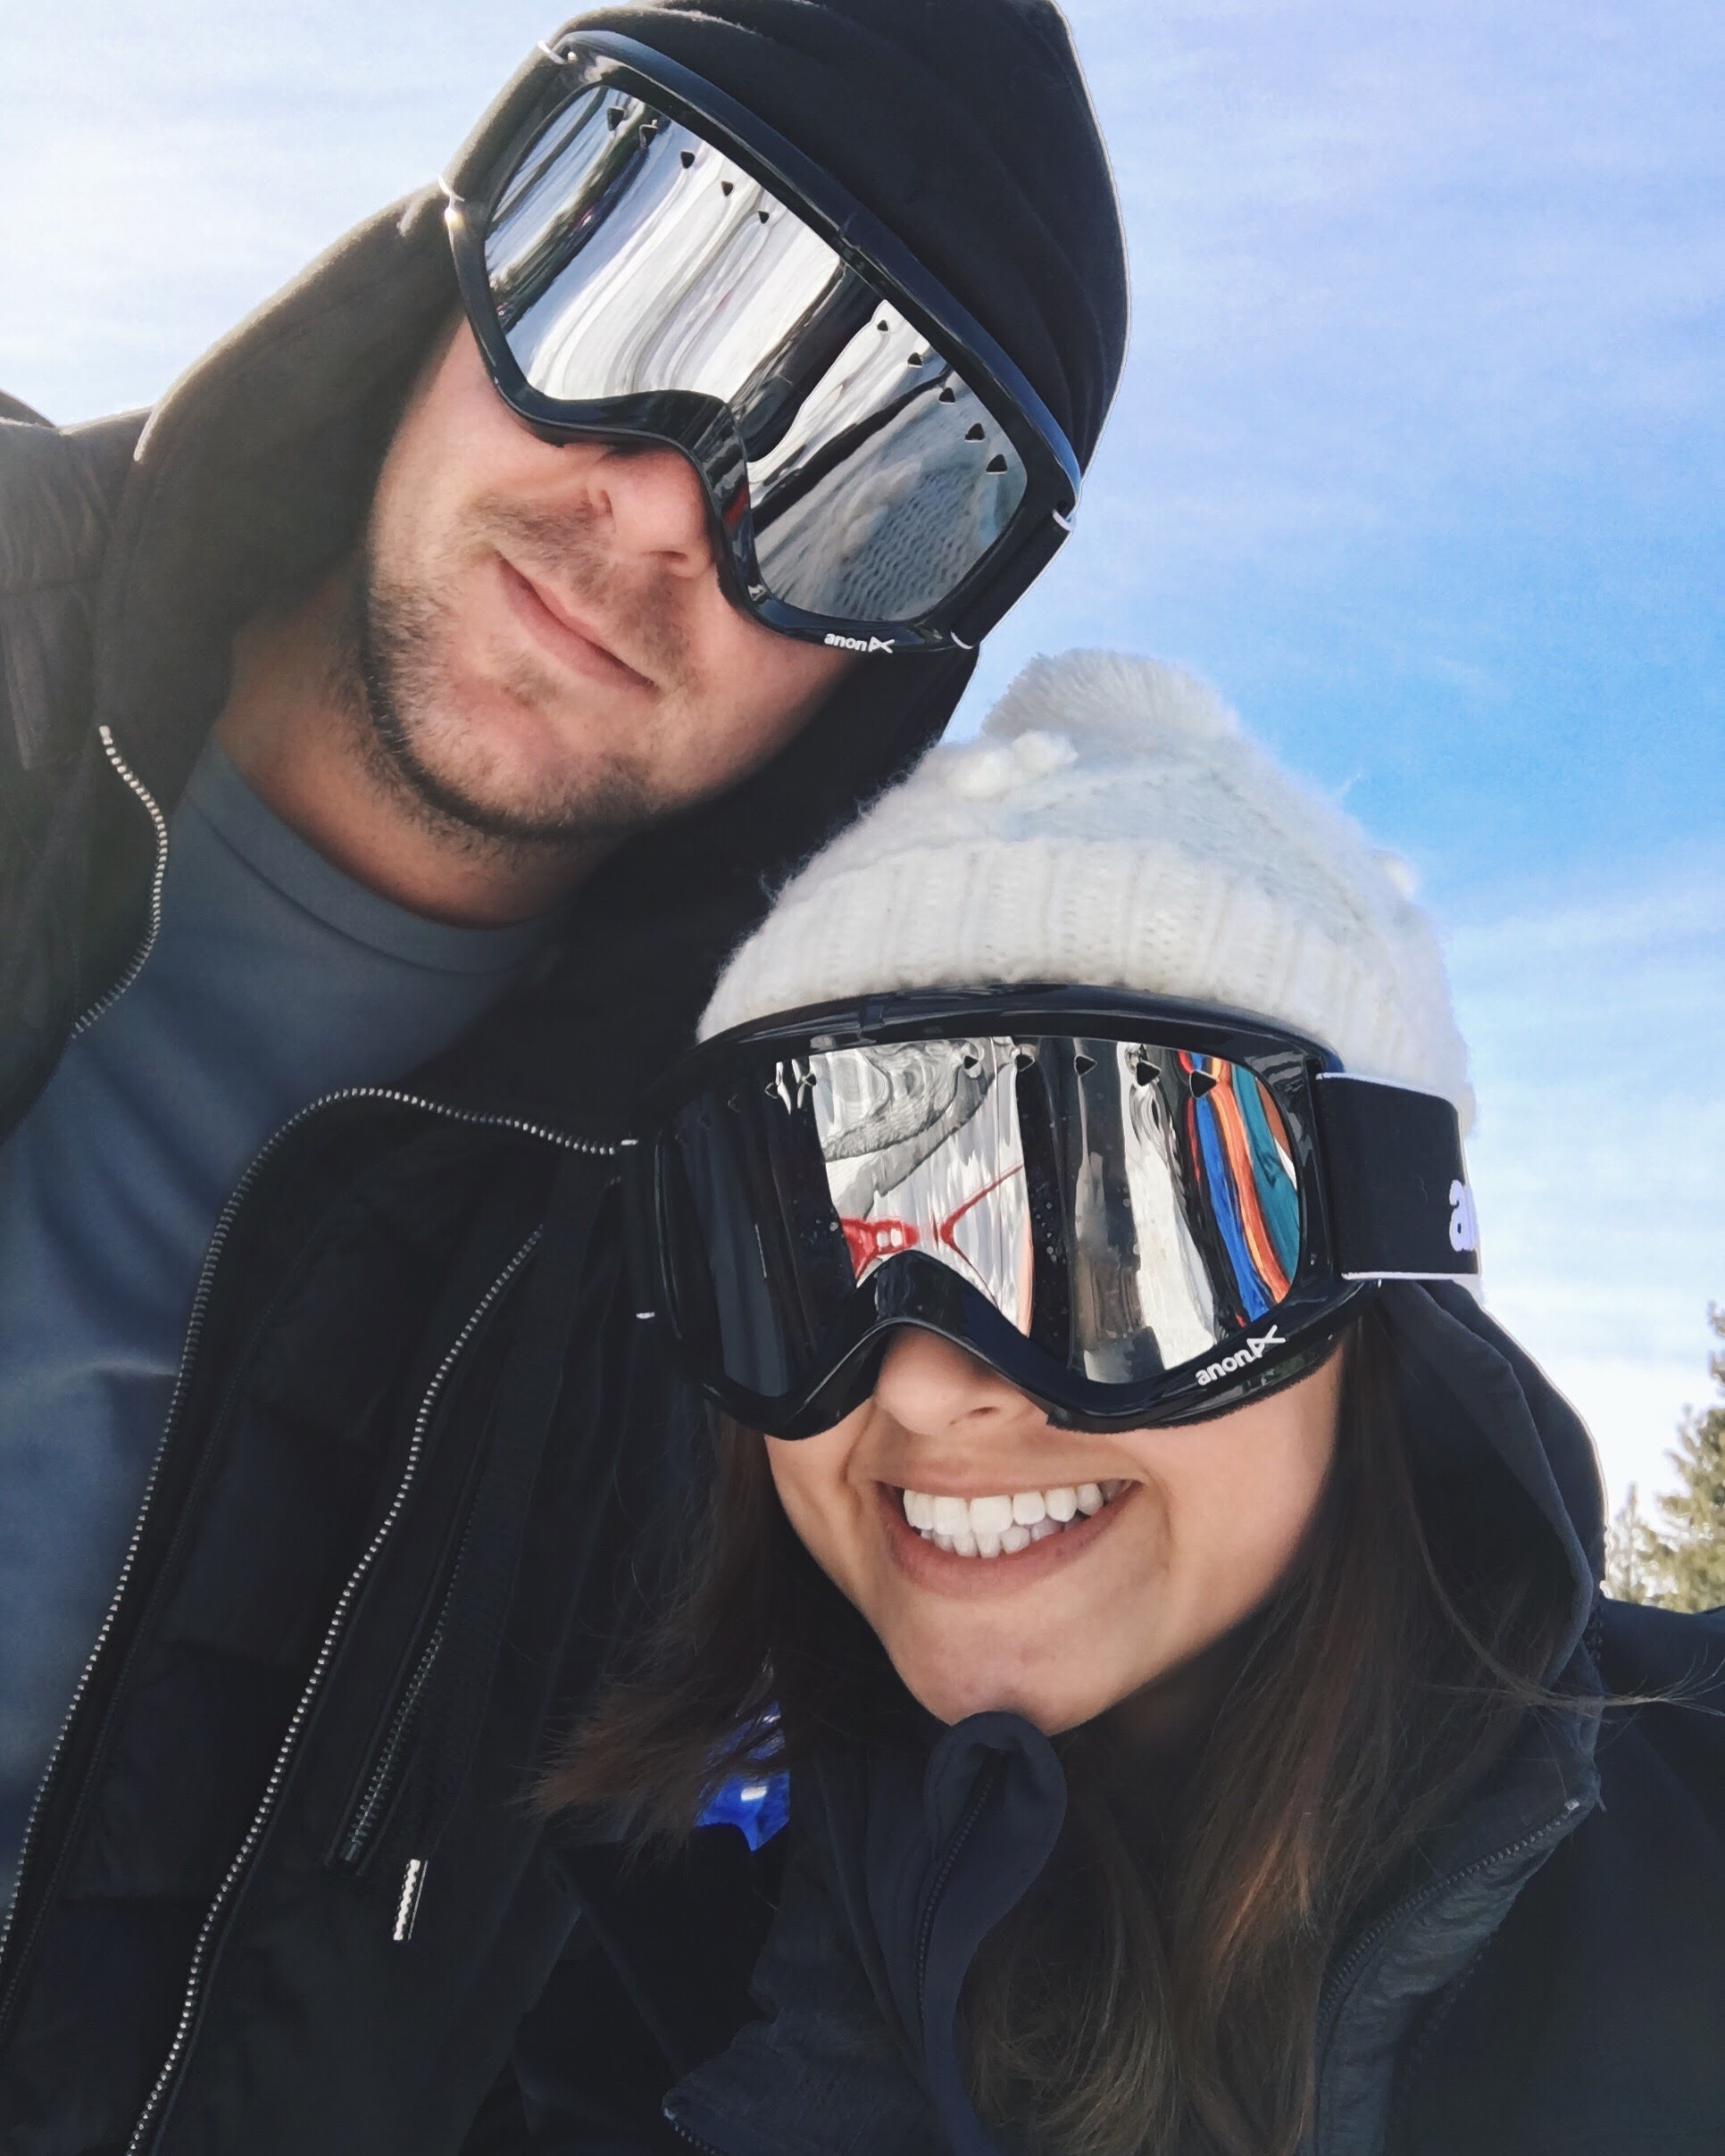 Me hiding my shame behind mirrored goggles, still smiling though. Alex is determined to teach me how to ski.